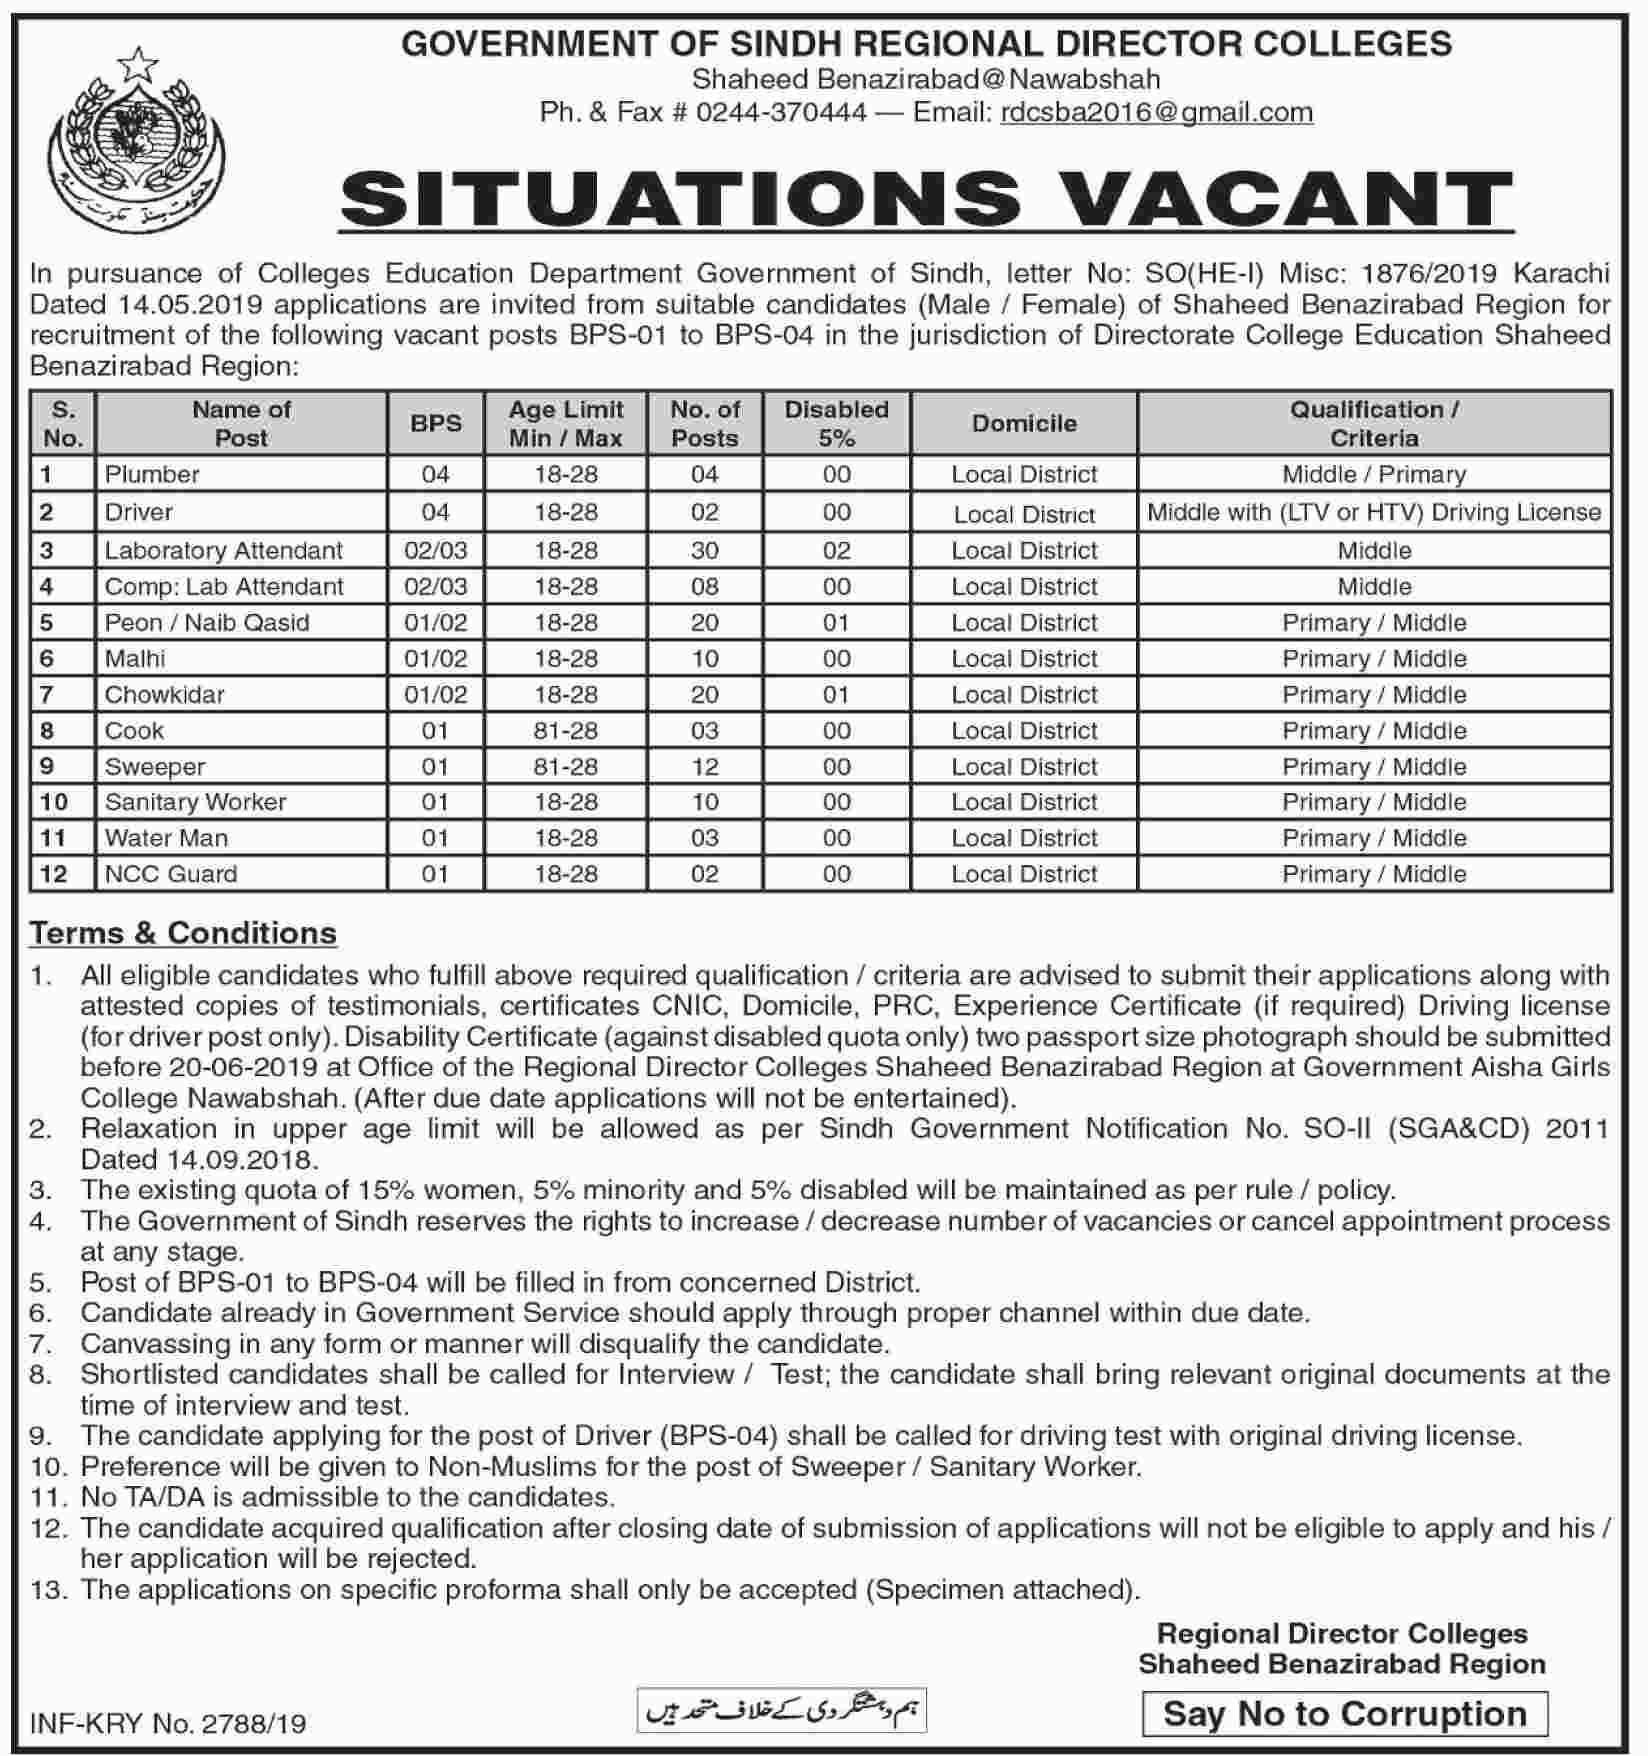 Ministry of Defence Jobs 2014 awampkcom Fashion jobs